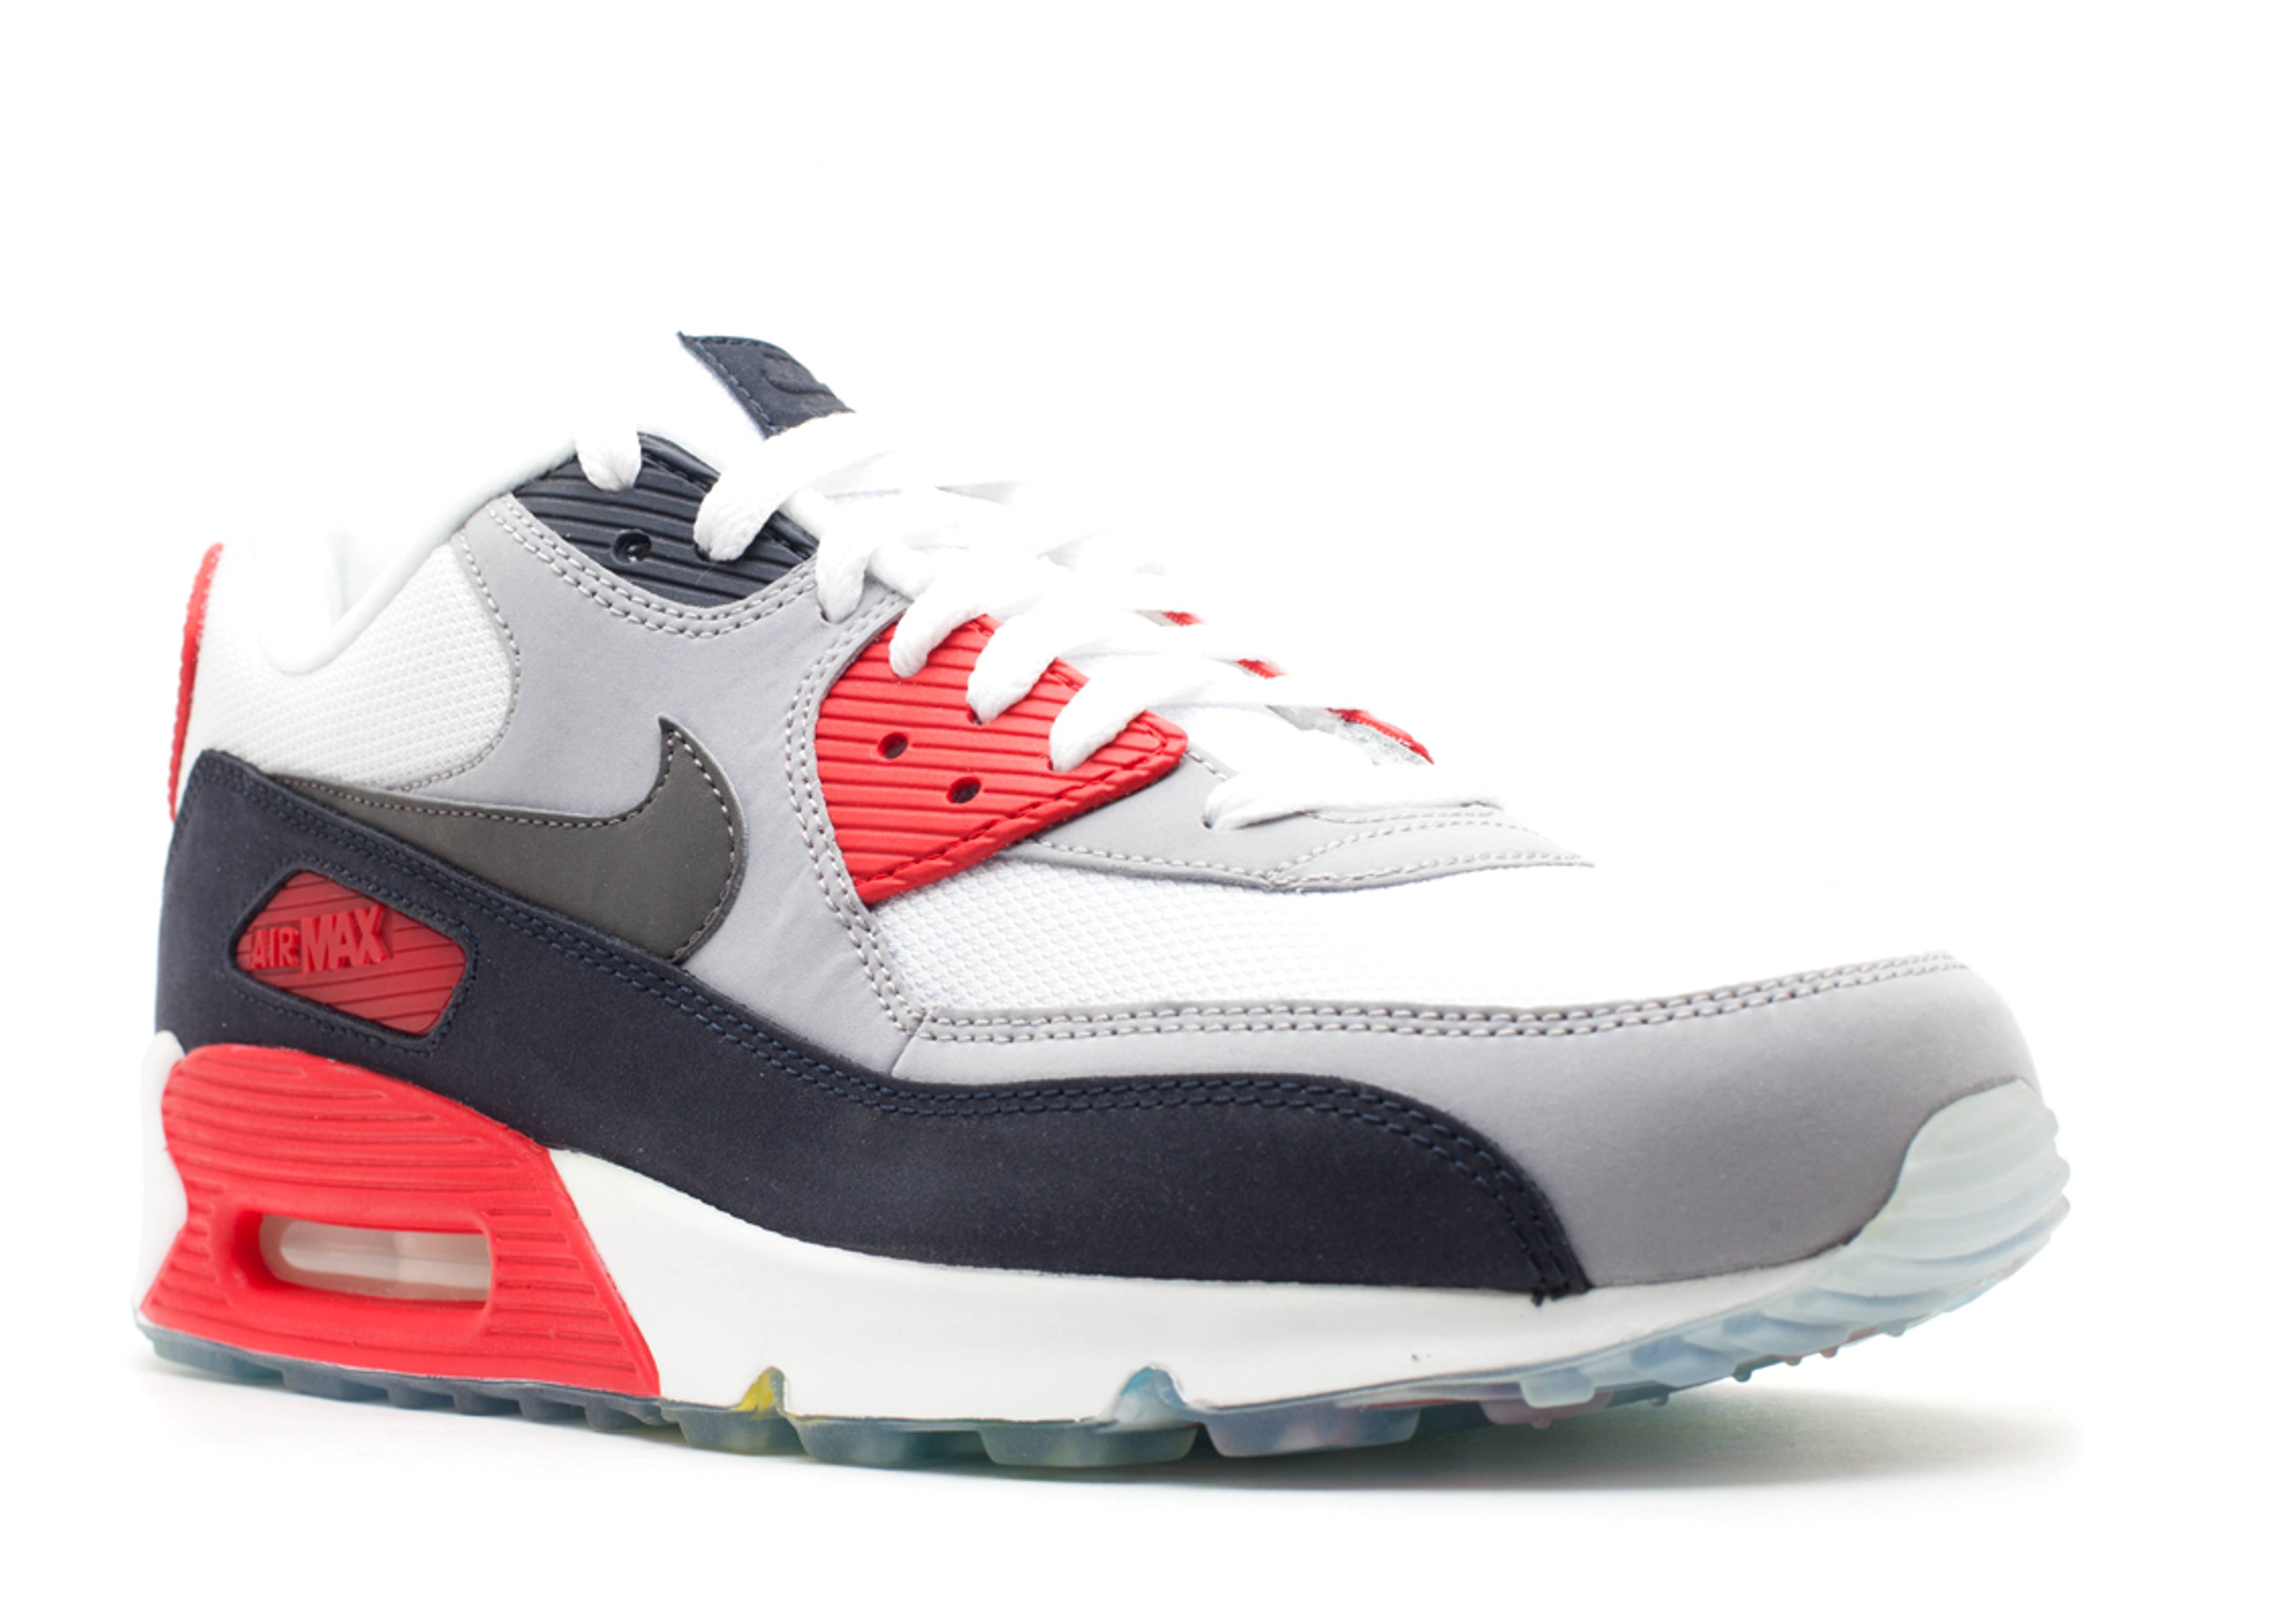 coupon code for nike air max 90 jd sports exclusive e86cf 05fb2 080c68bfb1